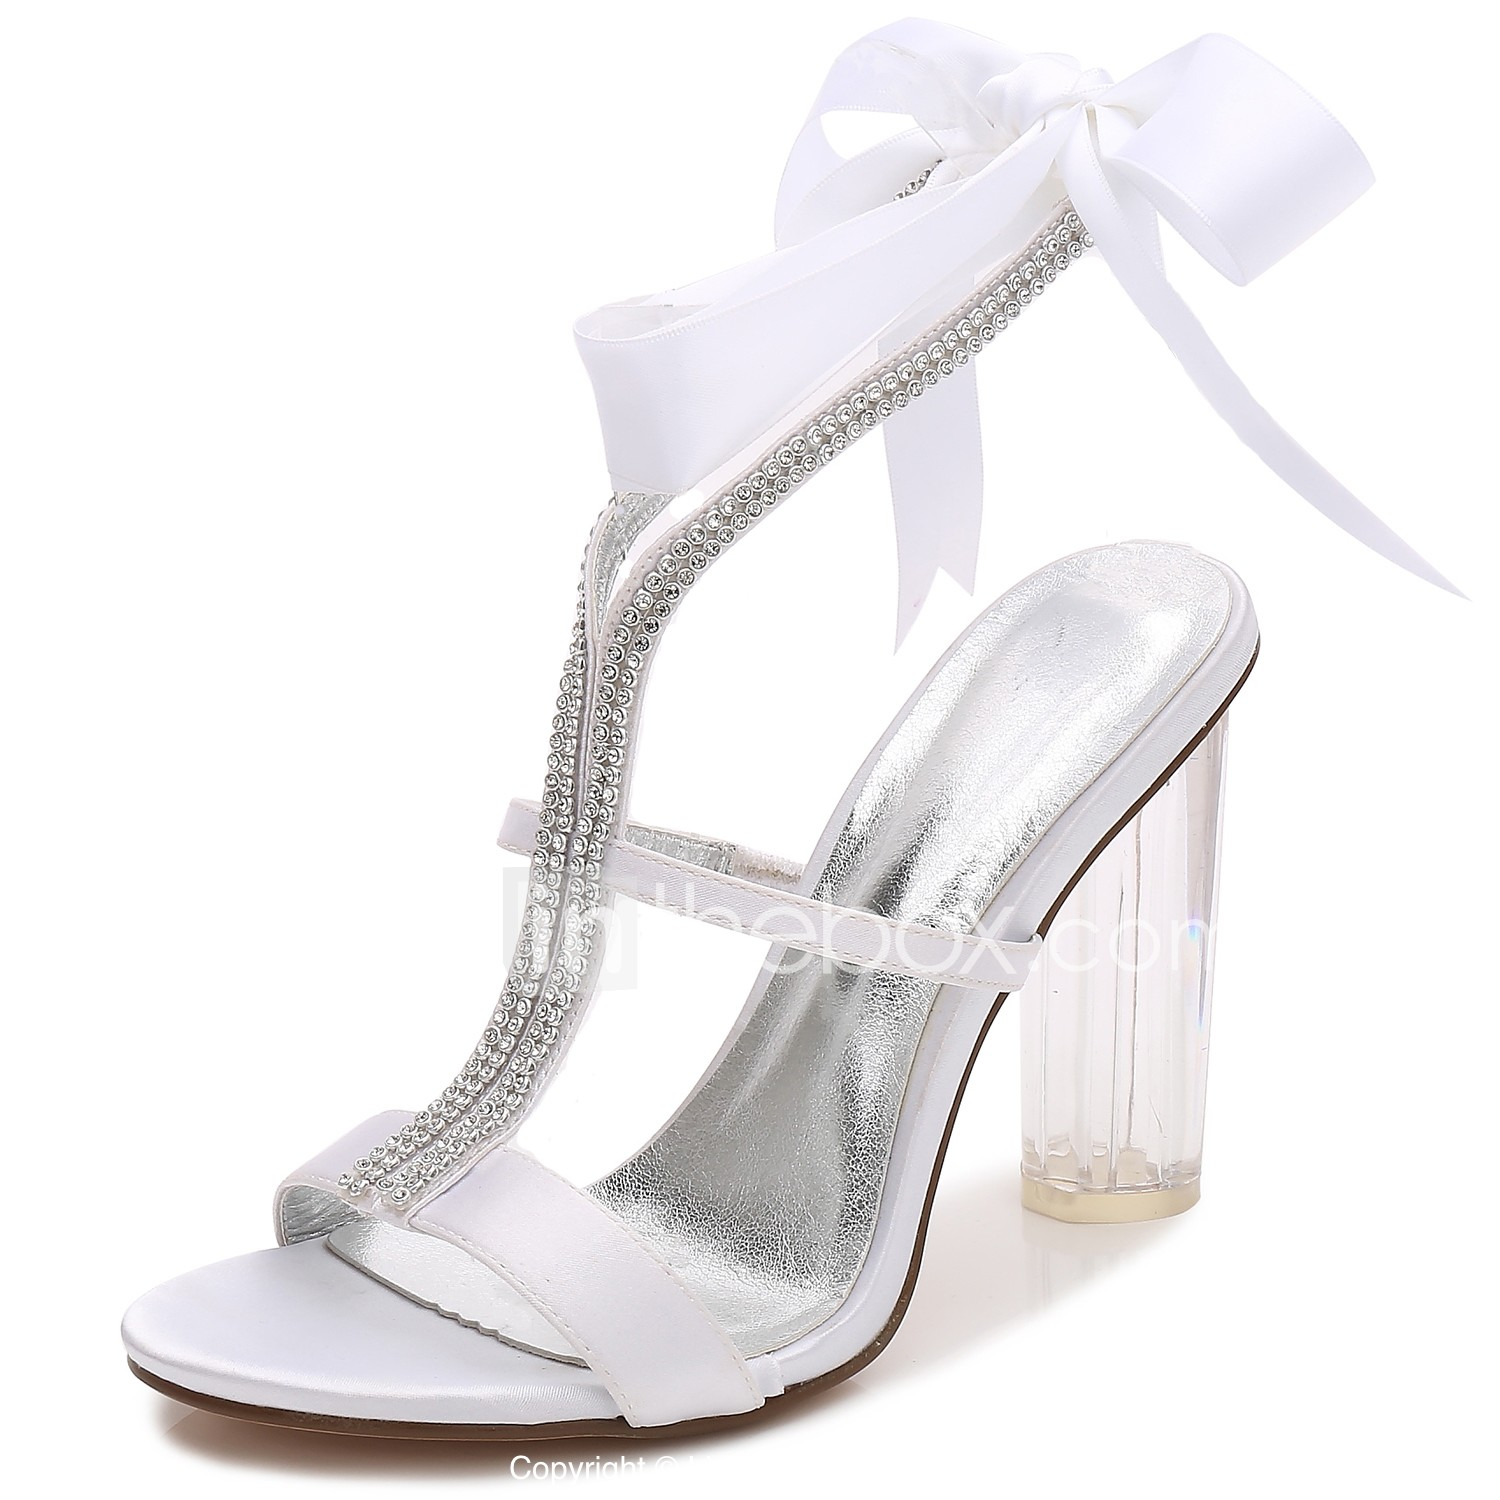 709d5cbee5 Women's Satin Spring / Summer T-Strap / Basic Pump / Ankle Strap Wedding  Shoes Chunky Heel / Translucent Heel / Crystal Heel Round Toe Rhinestone /  Bowknot ...